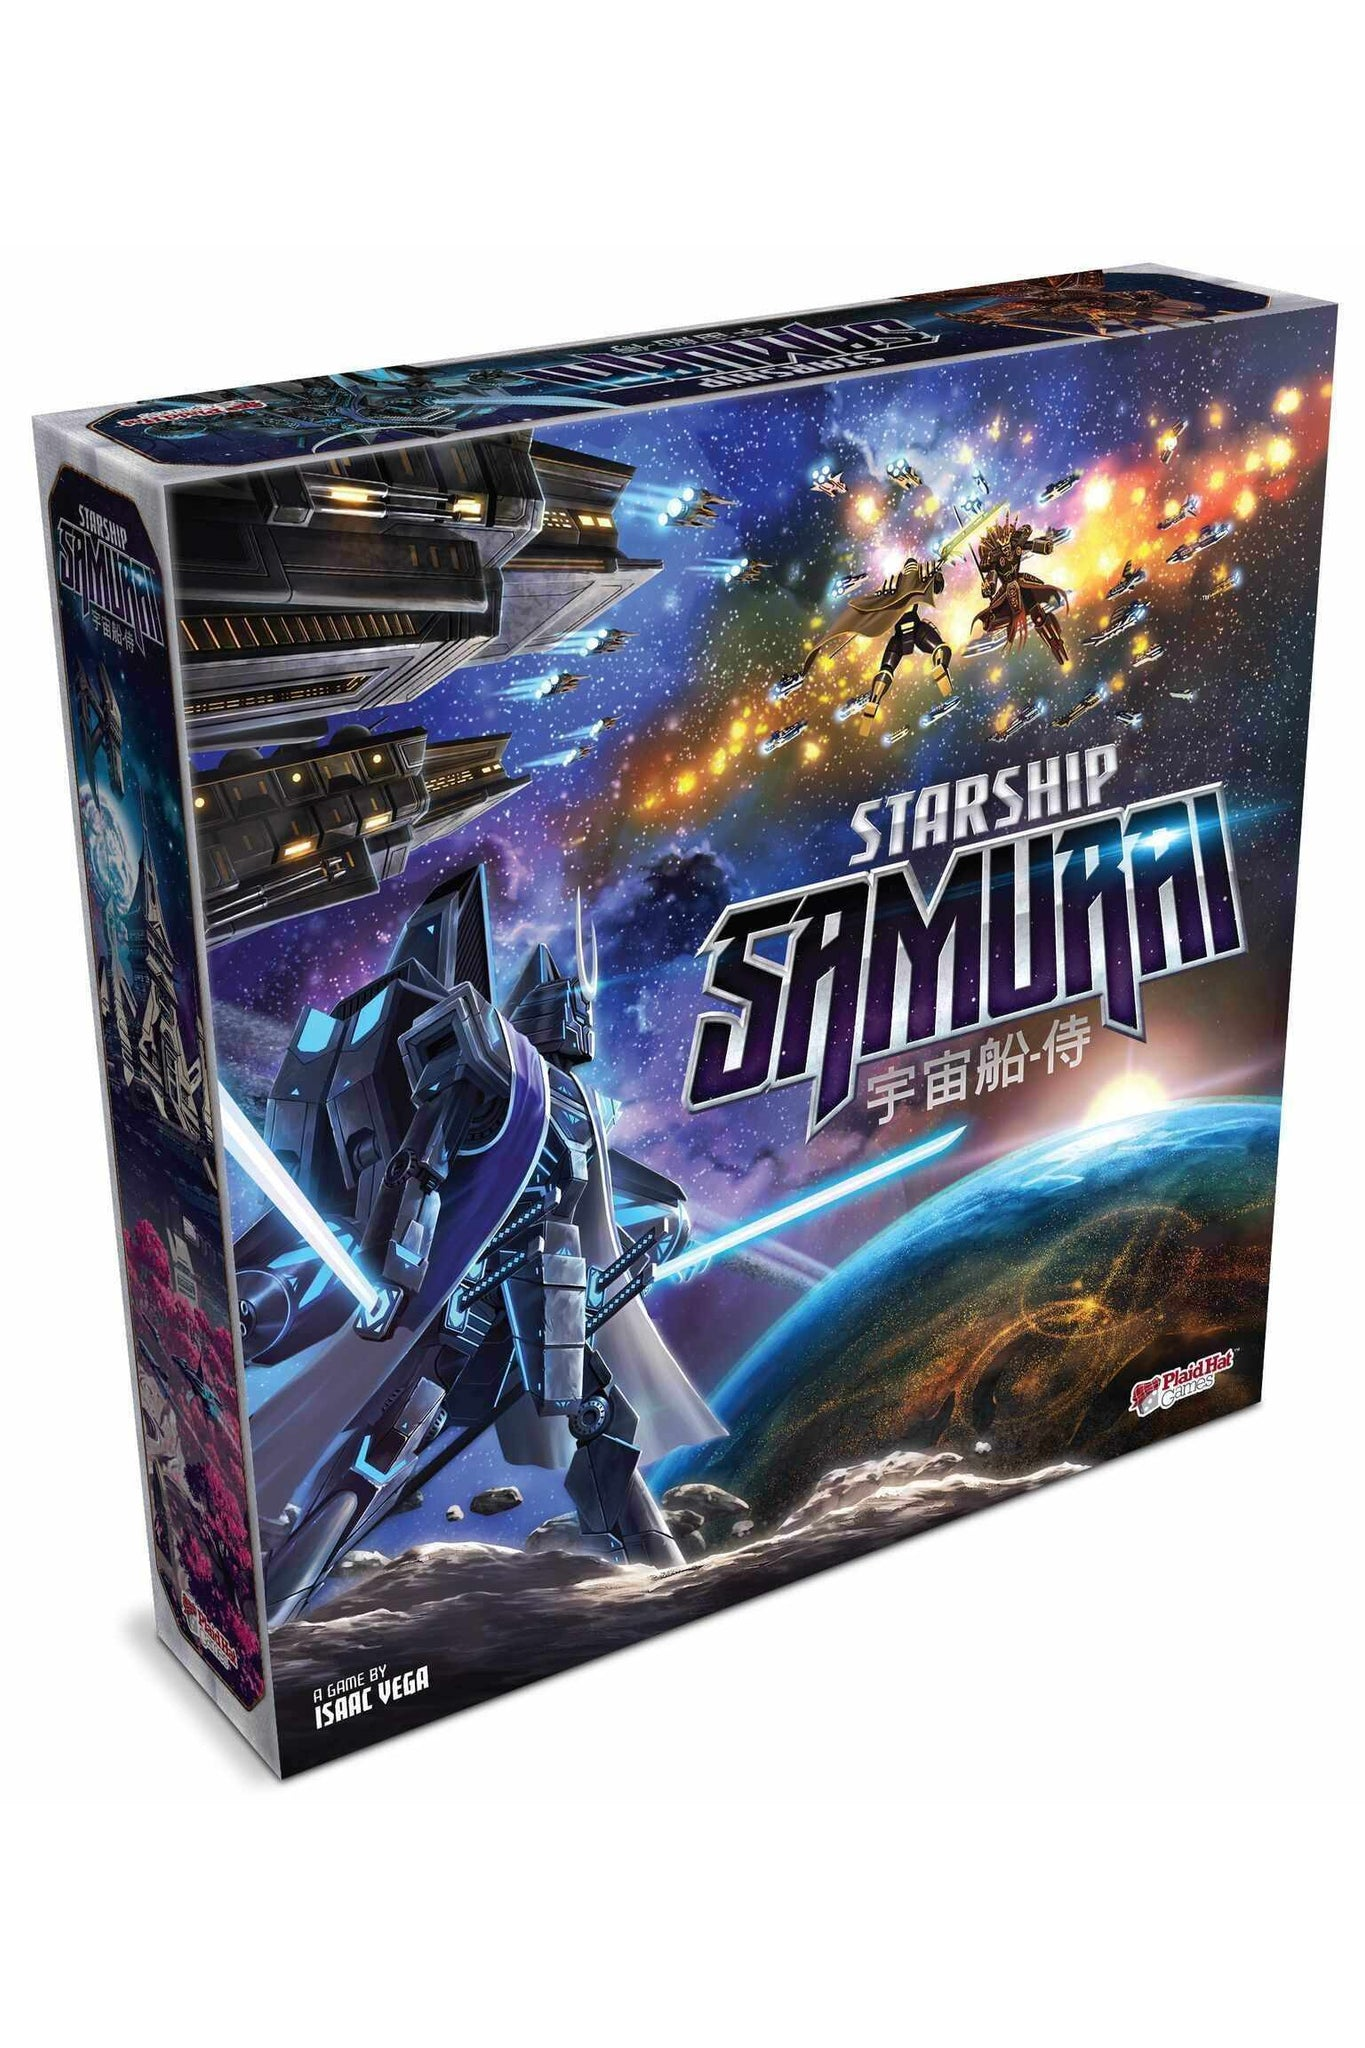 starship-samurai-plaid-hat-games-0699788109885-thegamersden.com